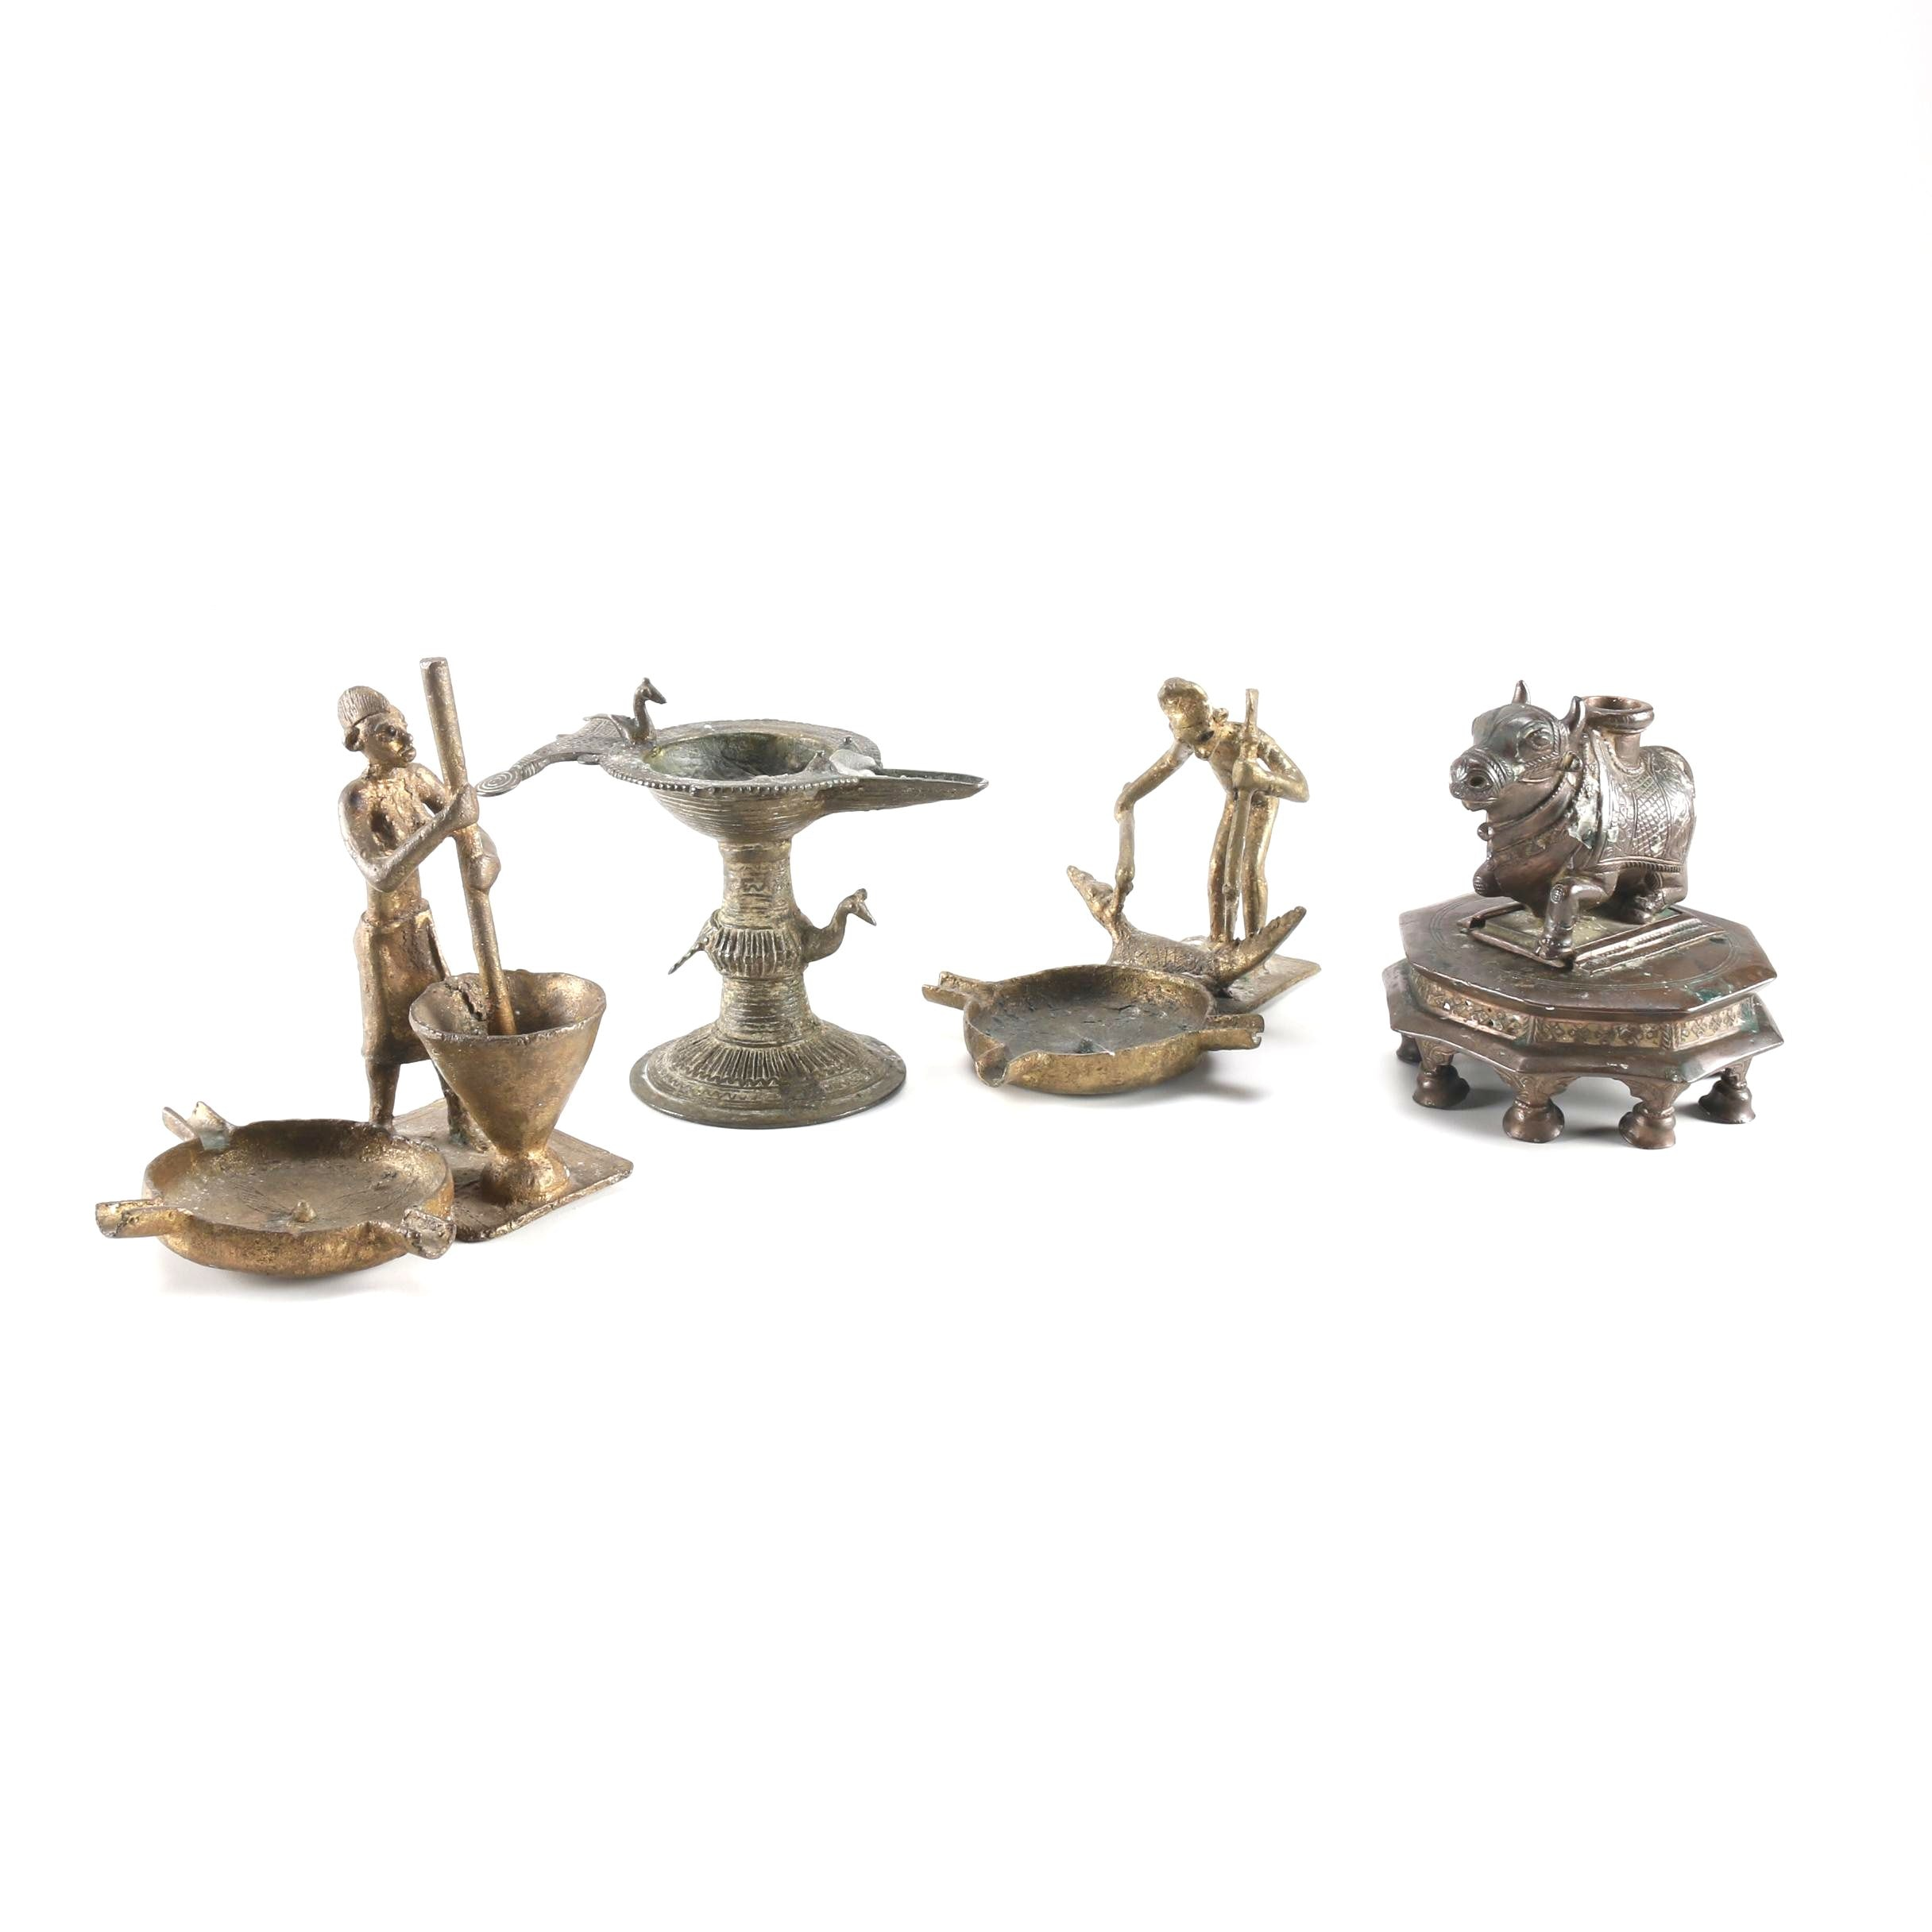 Bronze Decor Items Including Ashtrays and Candleholders